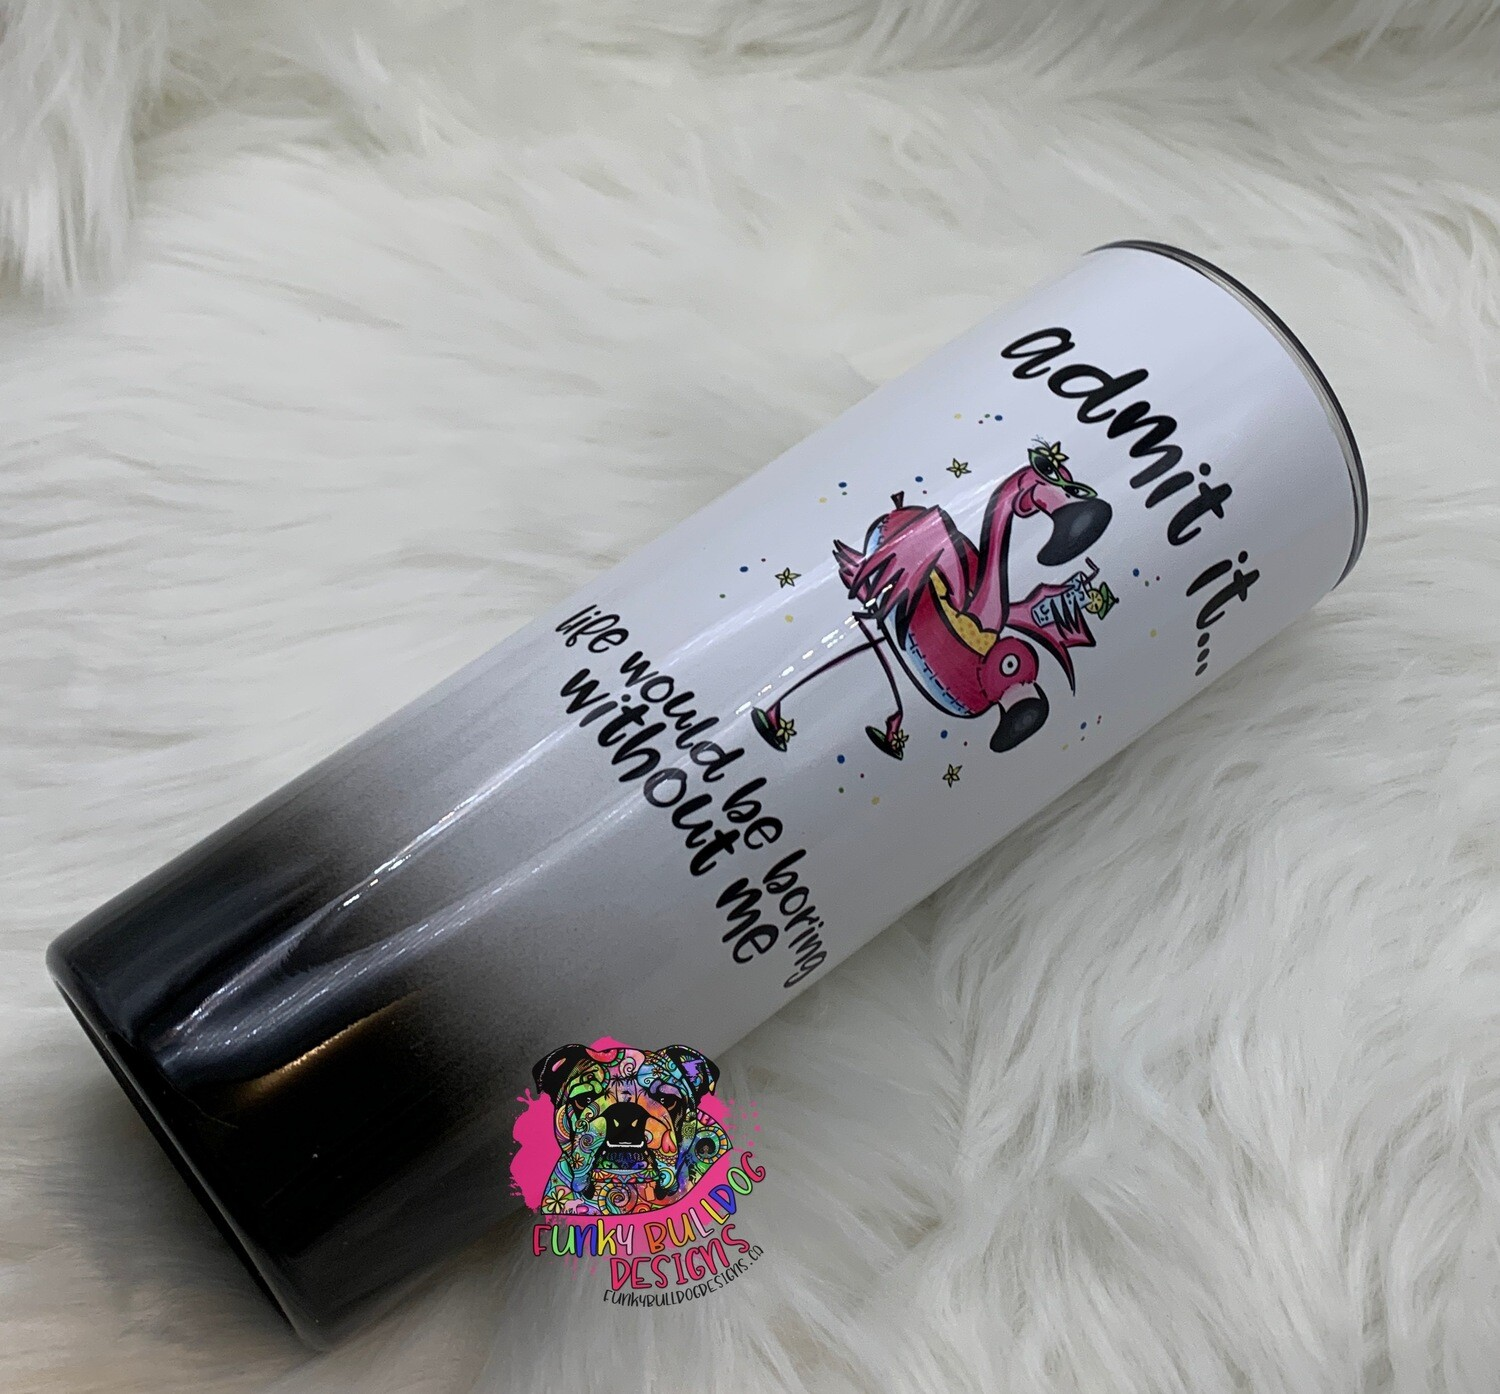 20oz stainless steel tall skinny - Flamingo design - Admin it, life would be boring without me.